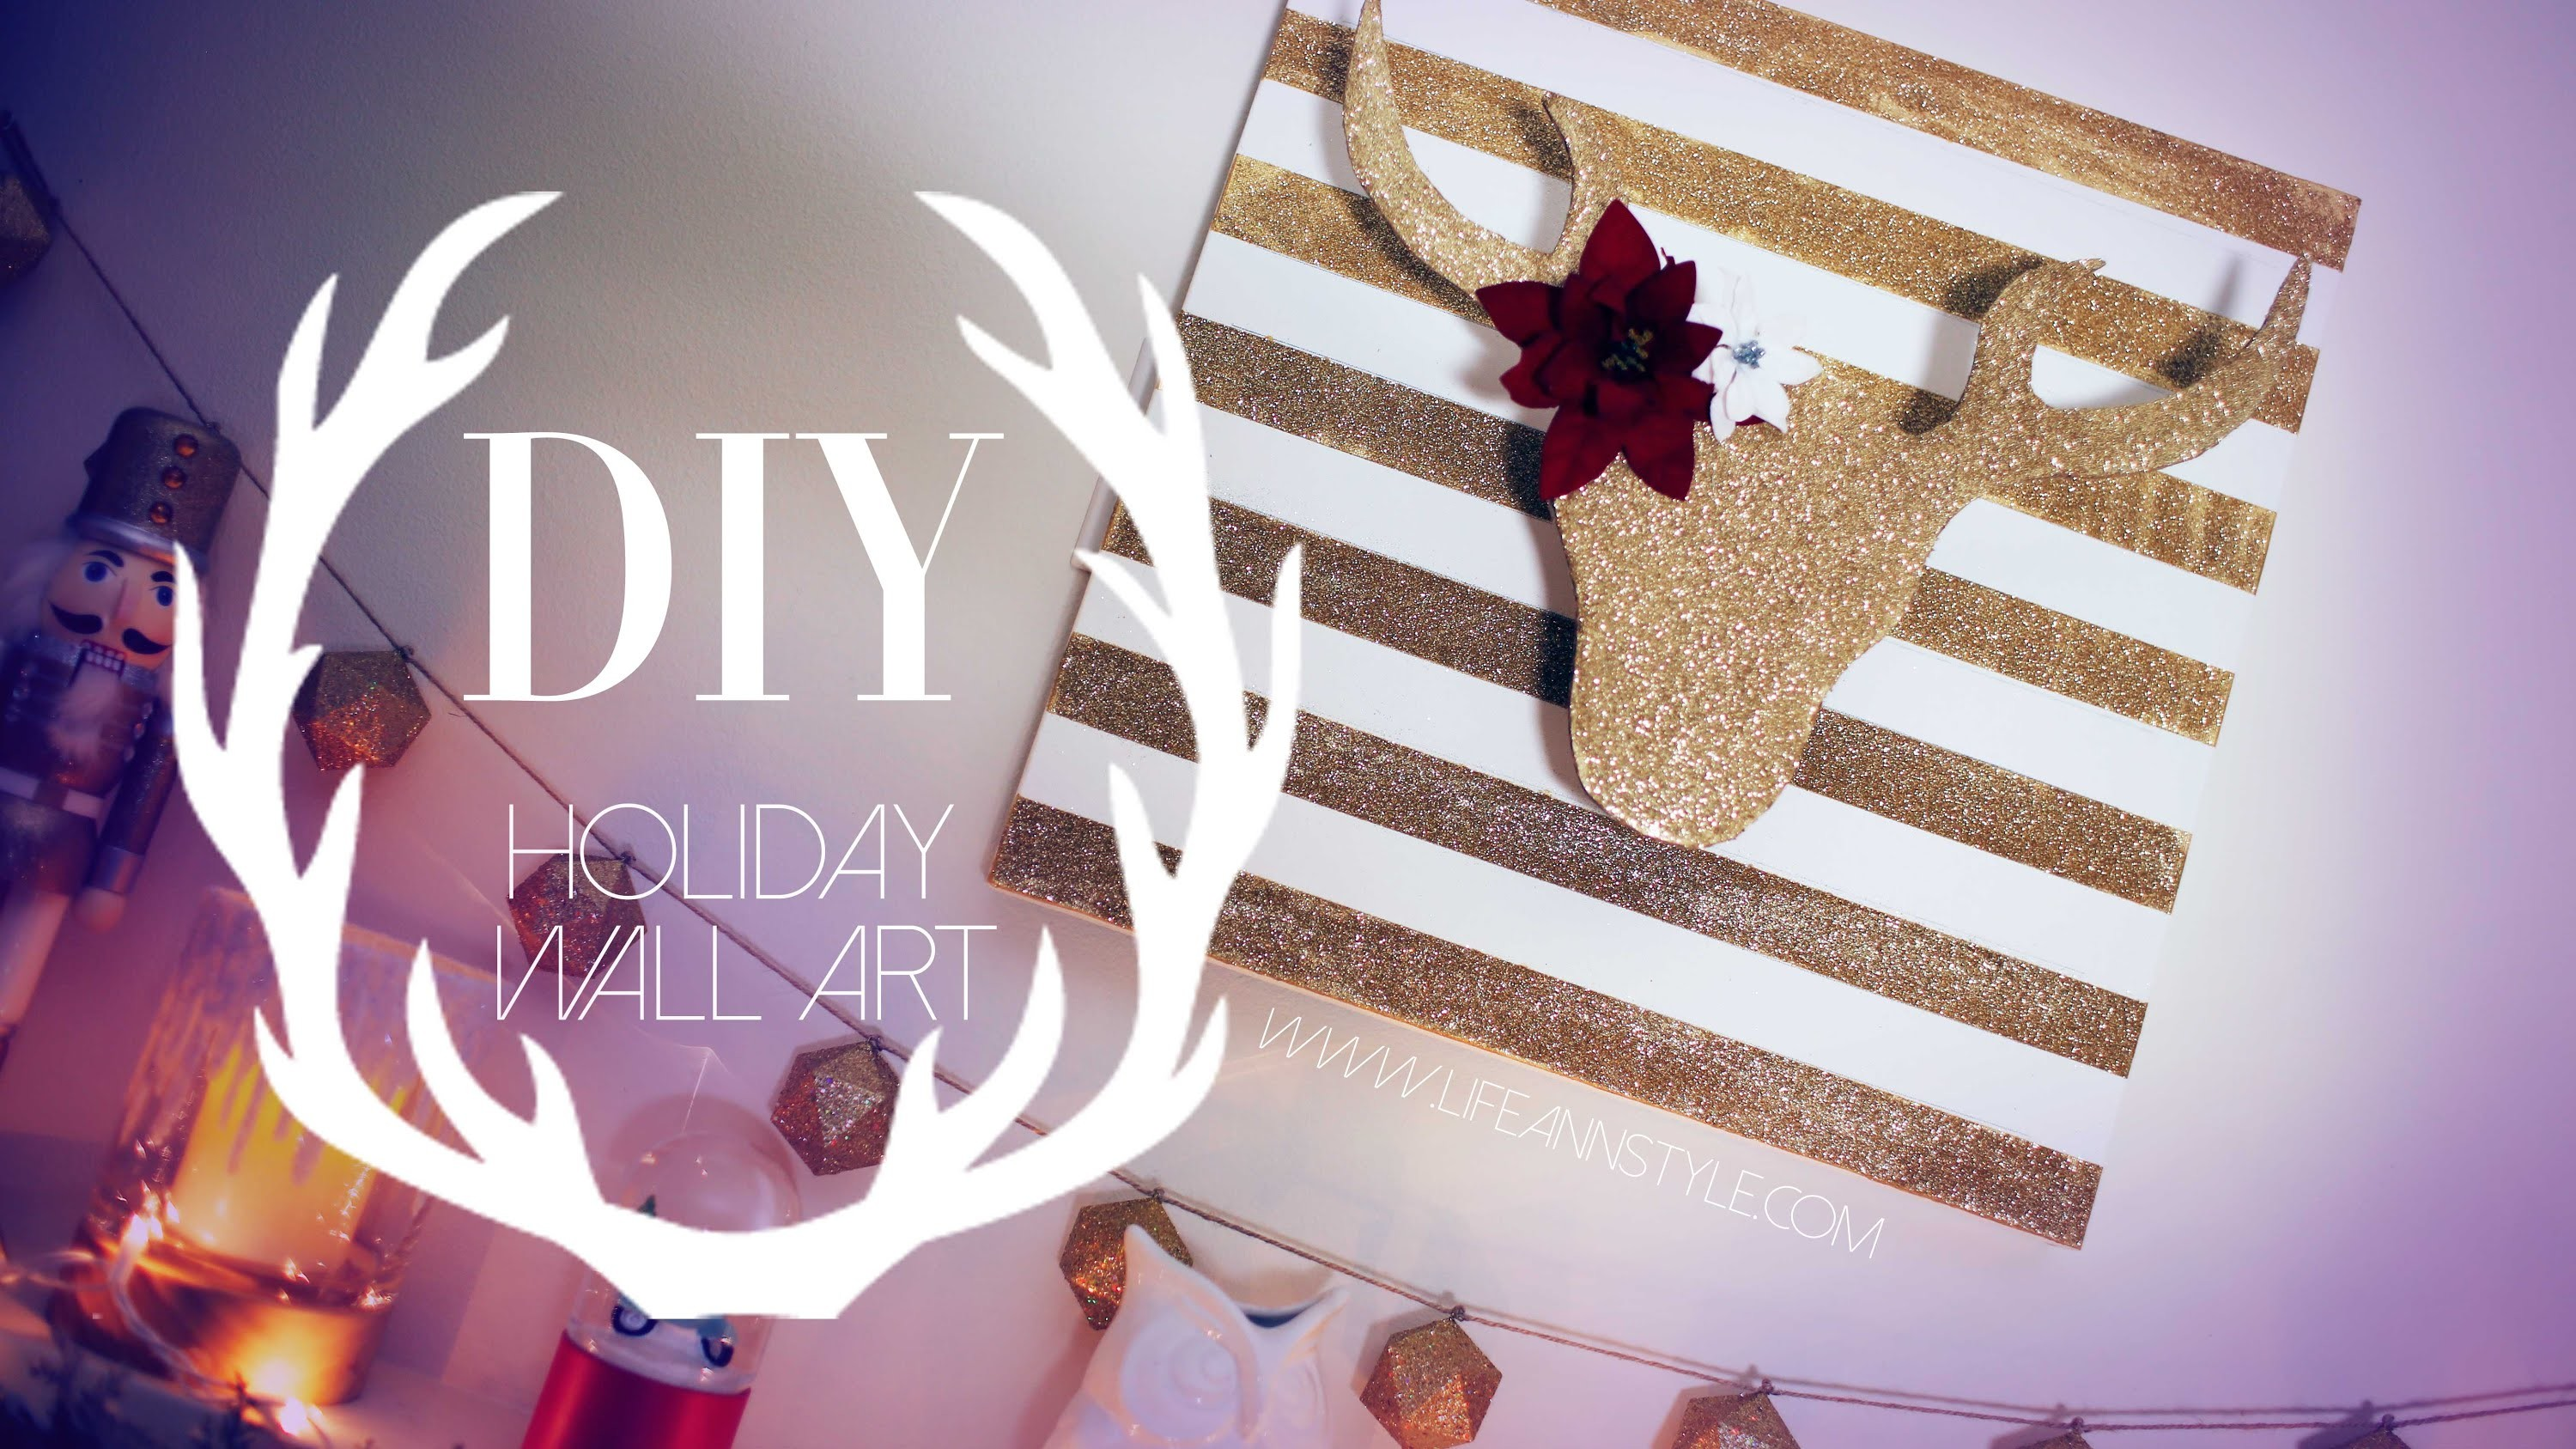 DIY Christmas Reindeer Decor | #DIYMAS | ANNEORSHINE